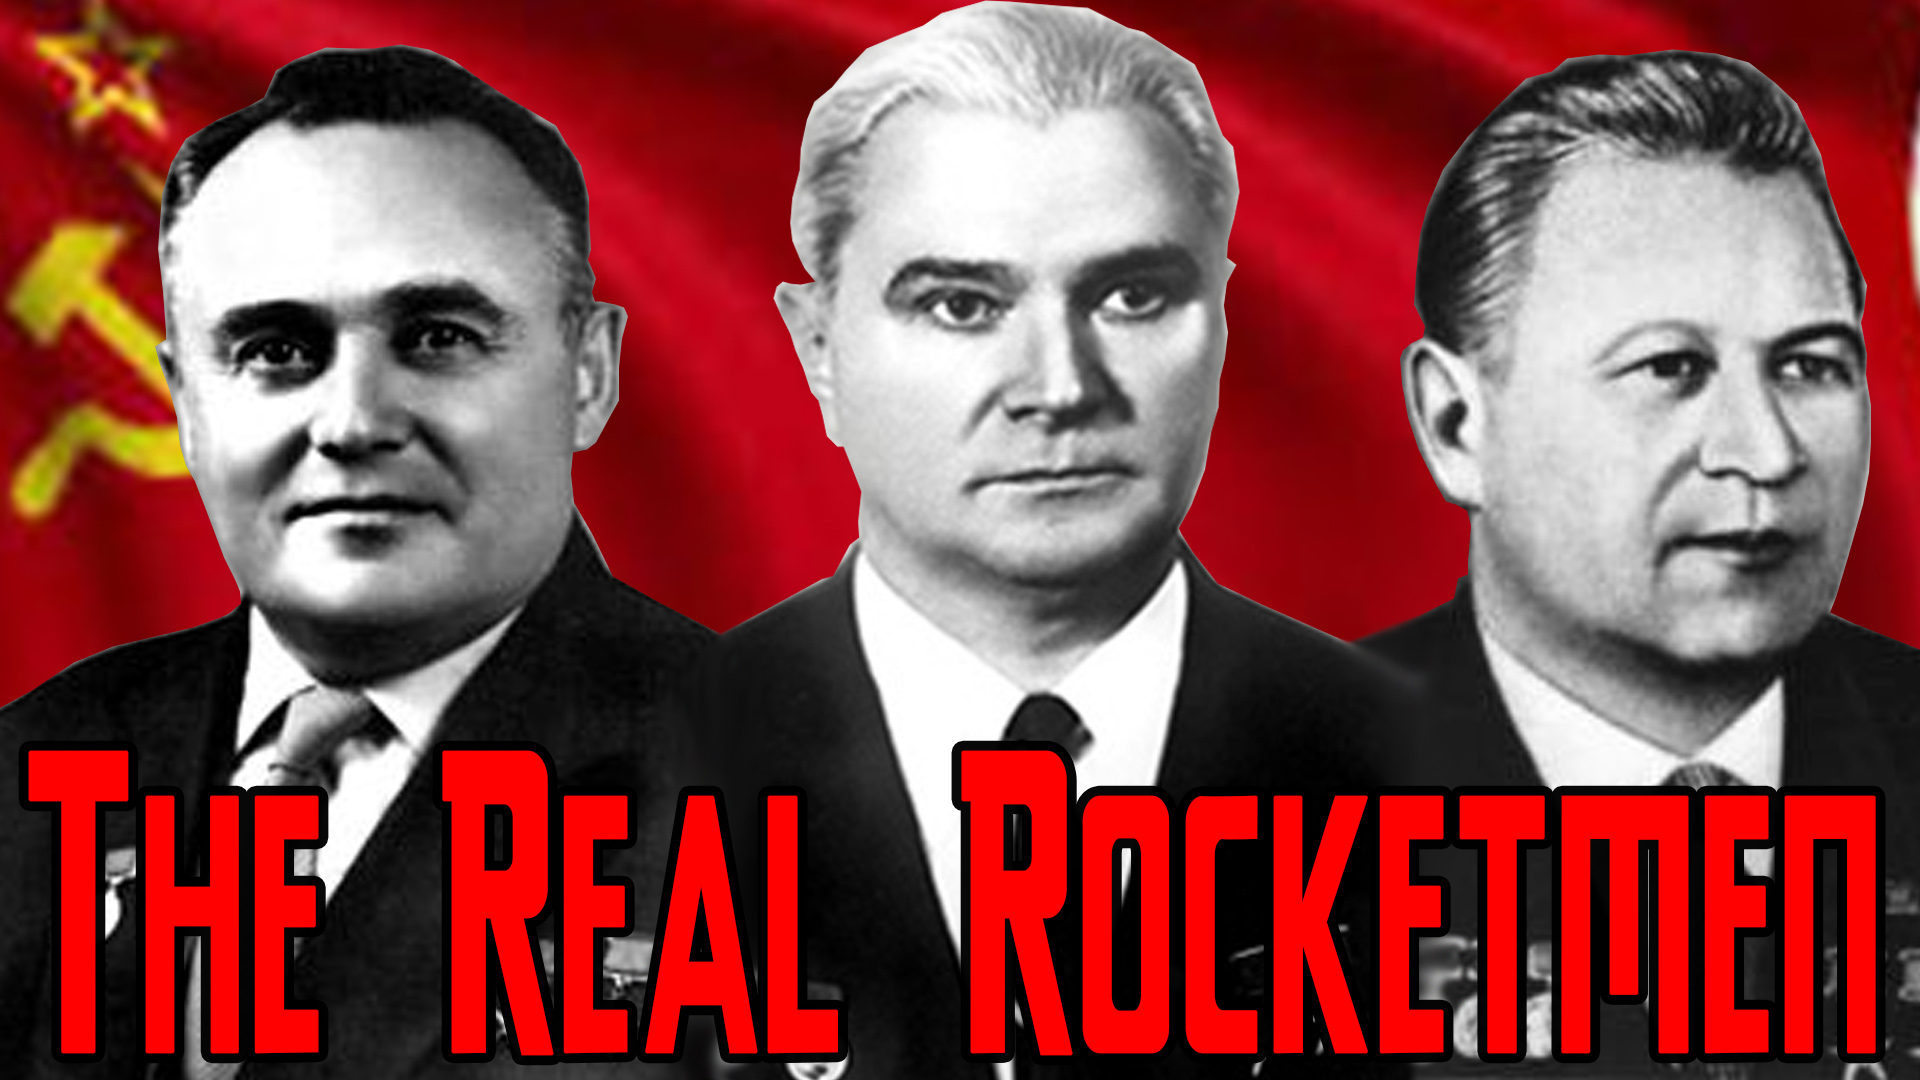 The real soviet rocket men